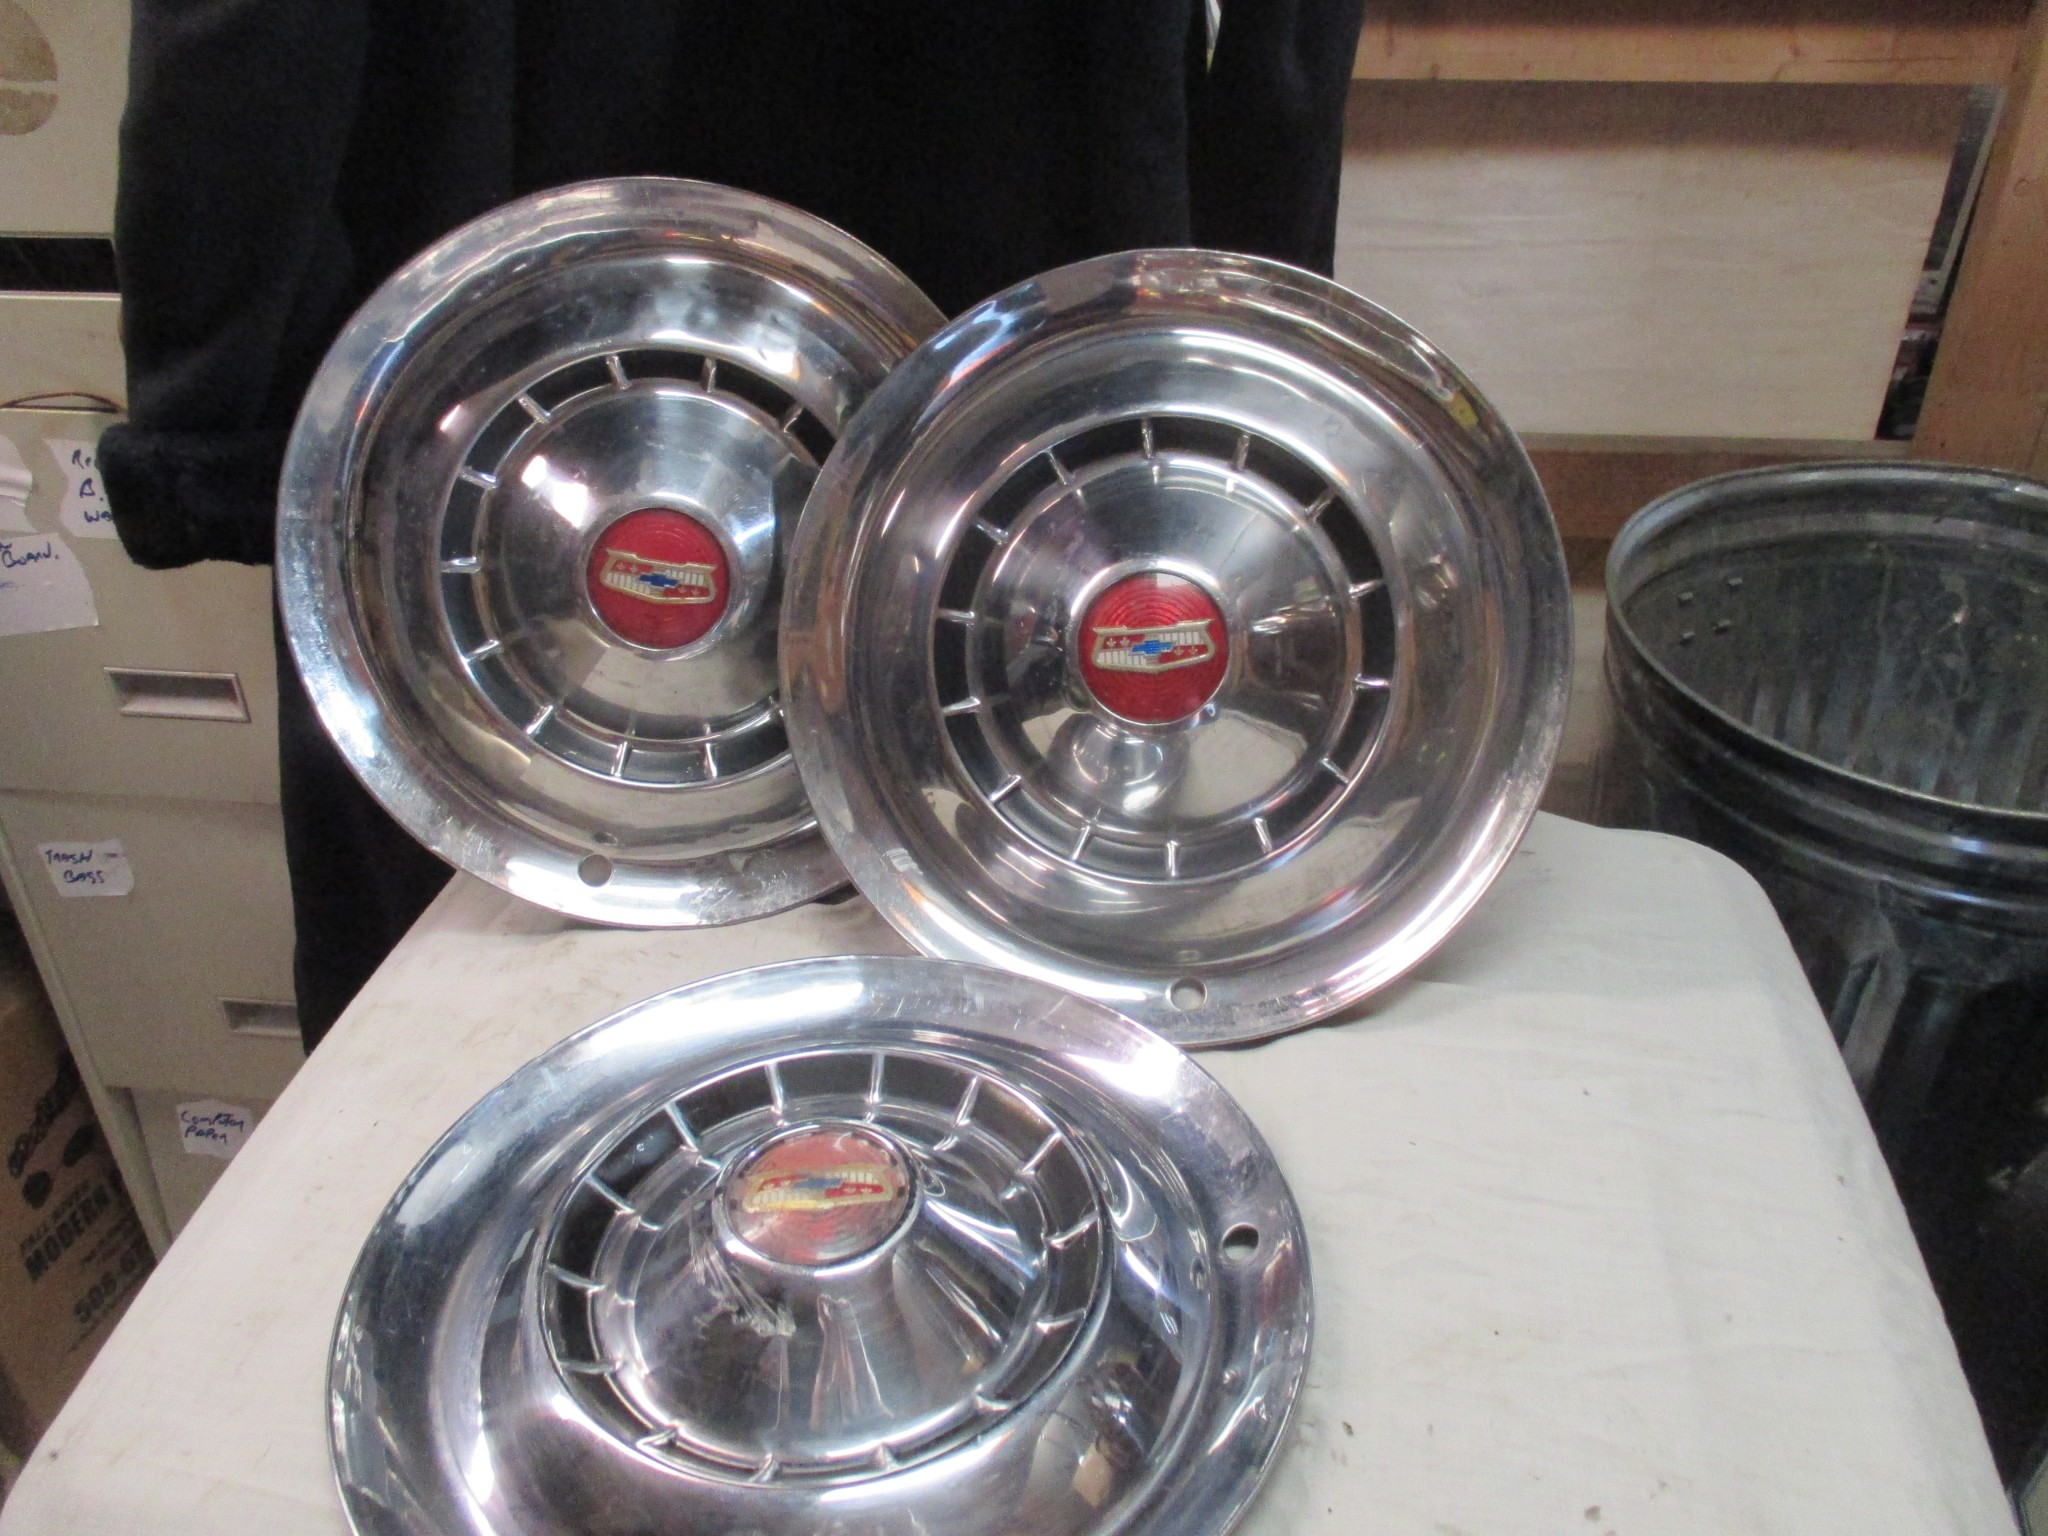 1954 Chevrolet Styleline Bel Air and Deluxe 1500, 2100 and 2400 Series Hubcap Set of 3